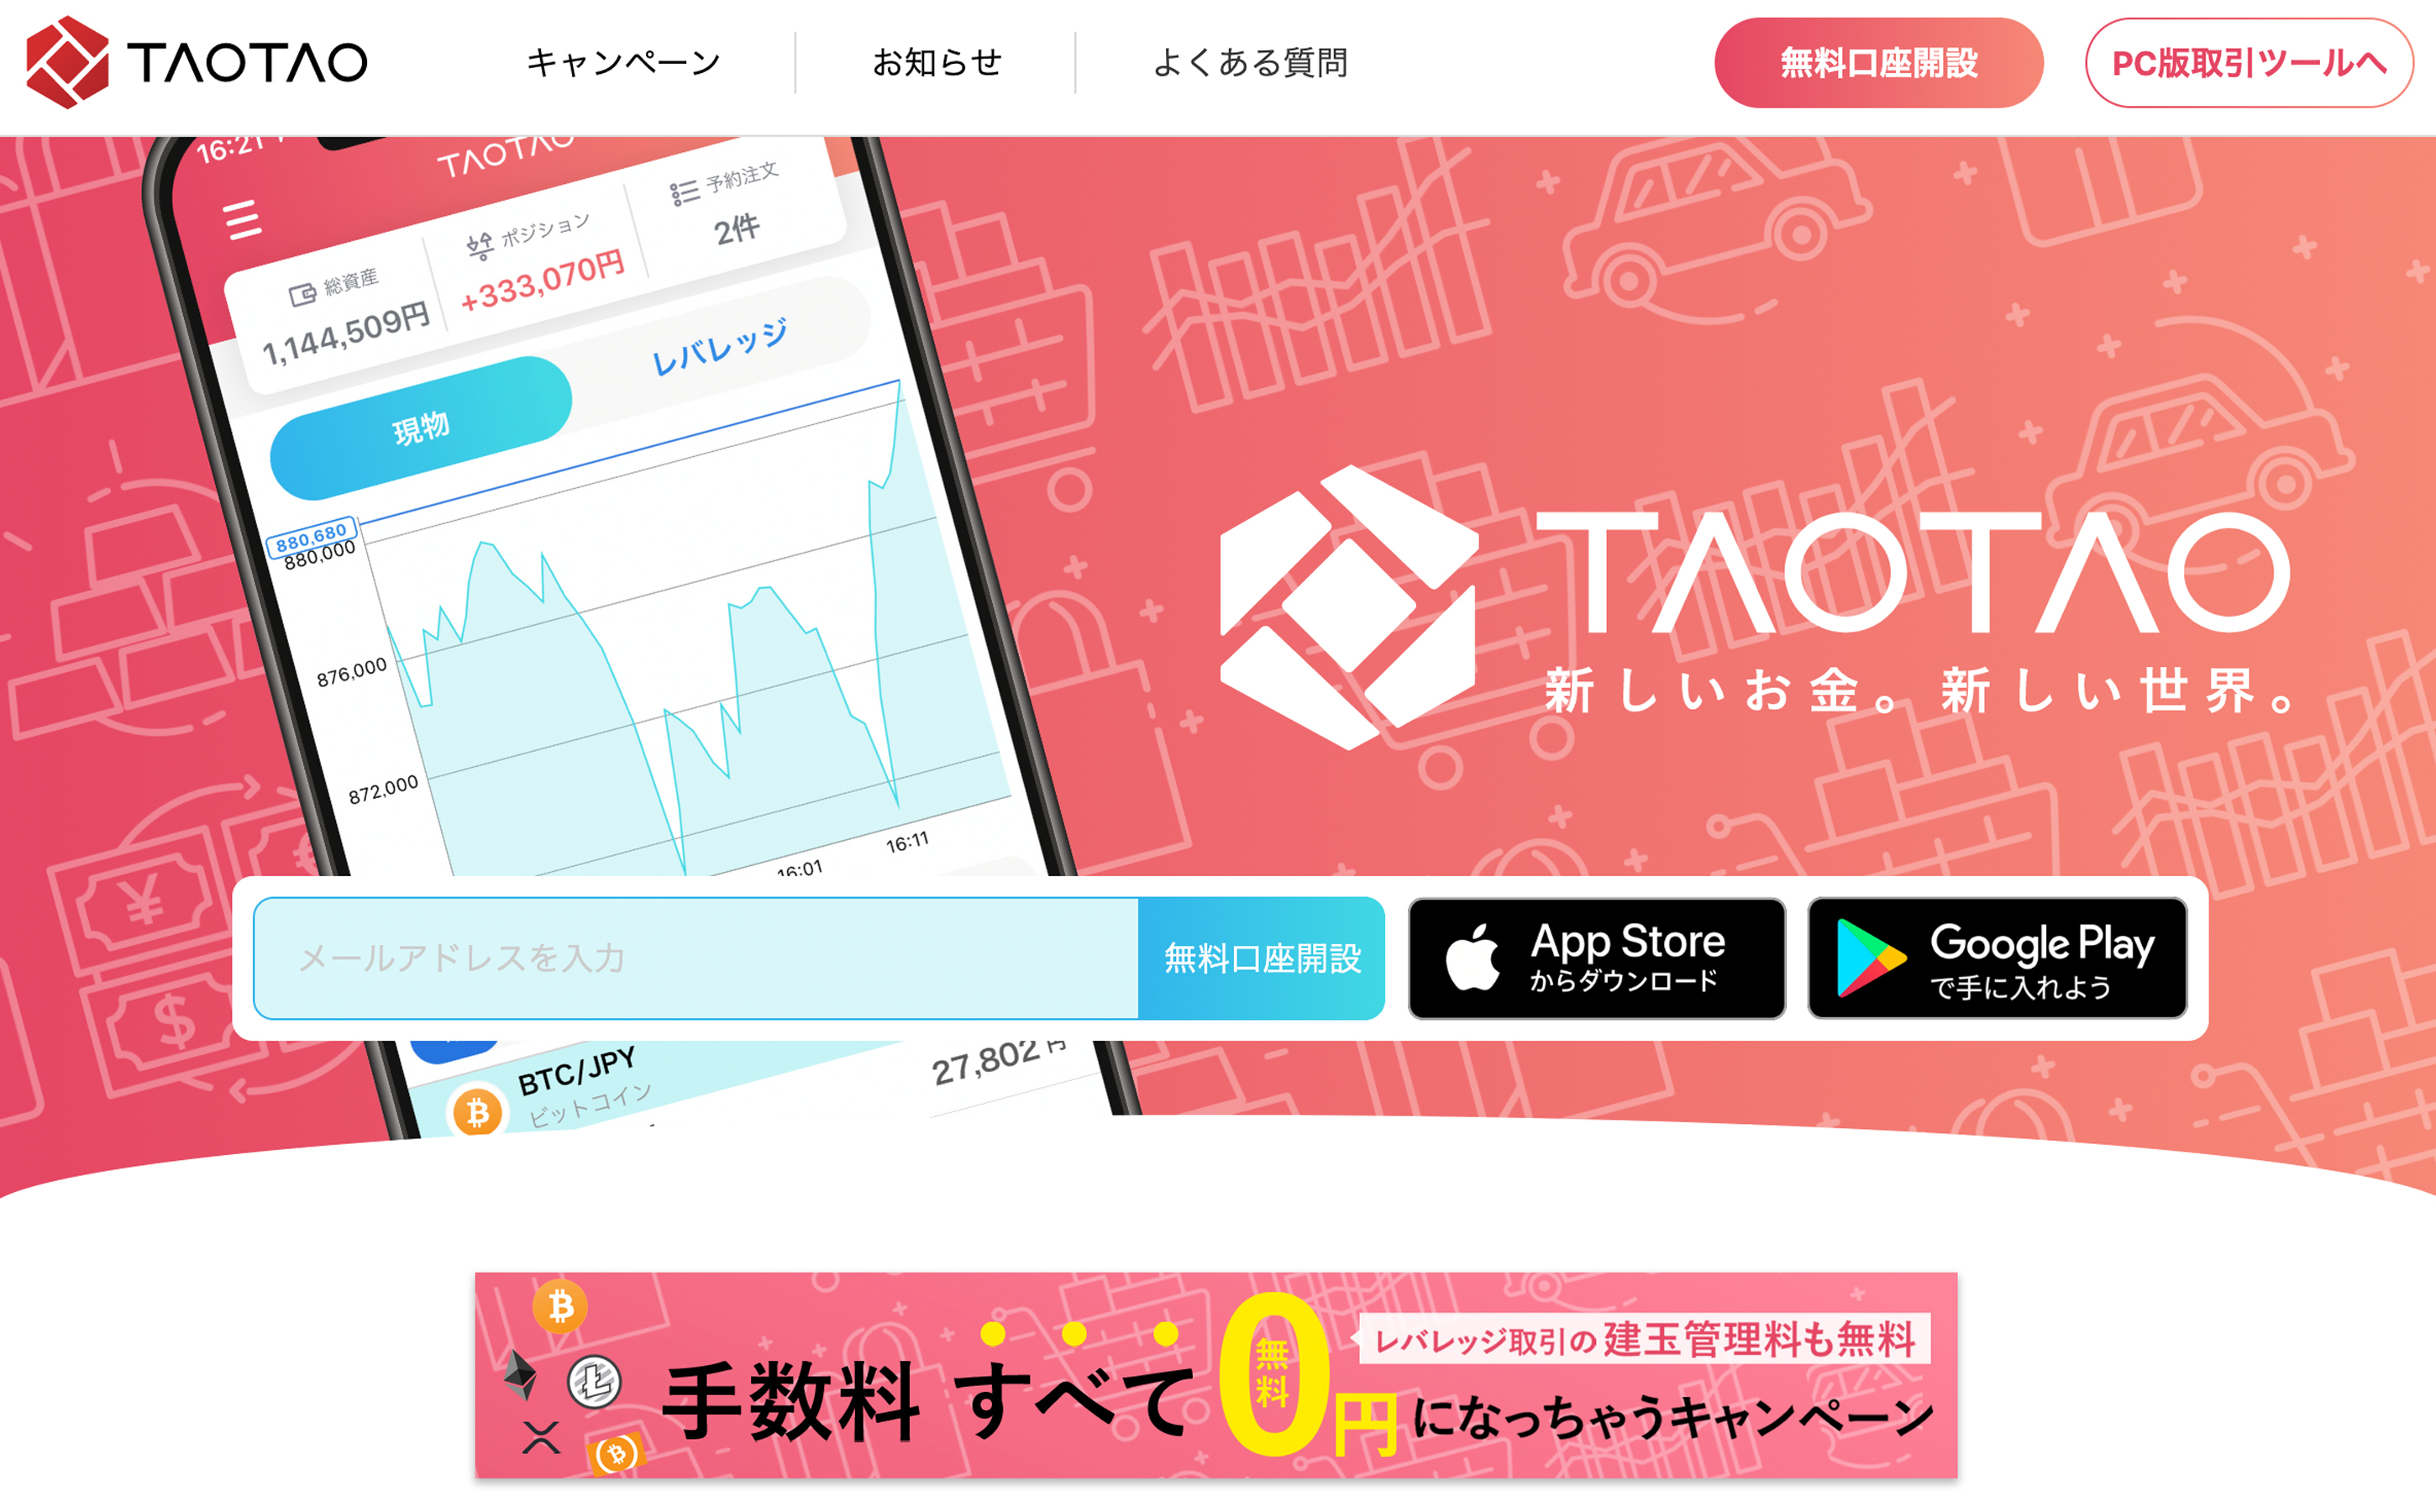 Yahoo Japan-Backed Exchange Launches Crypto-Yen Markets and Margin Trading